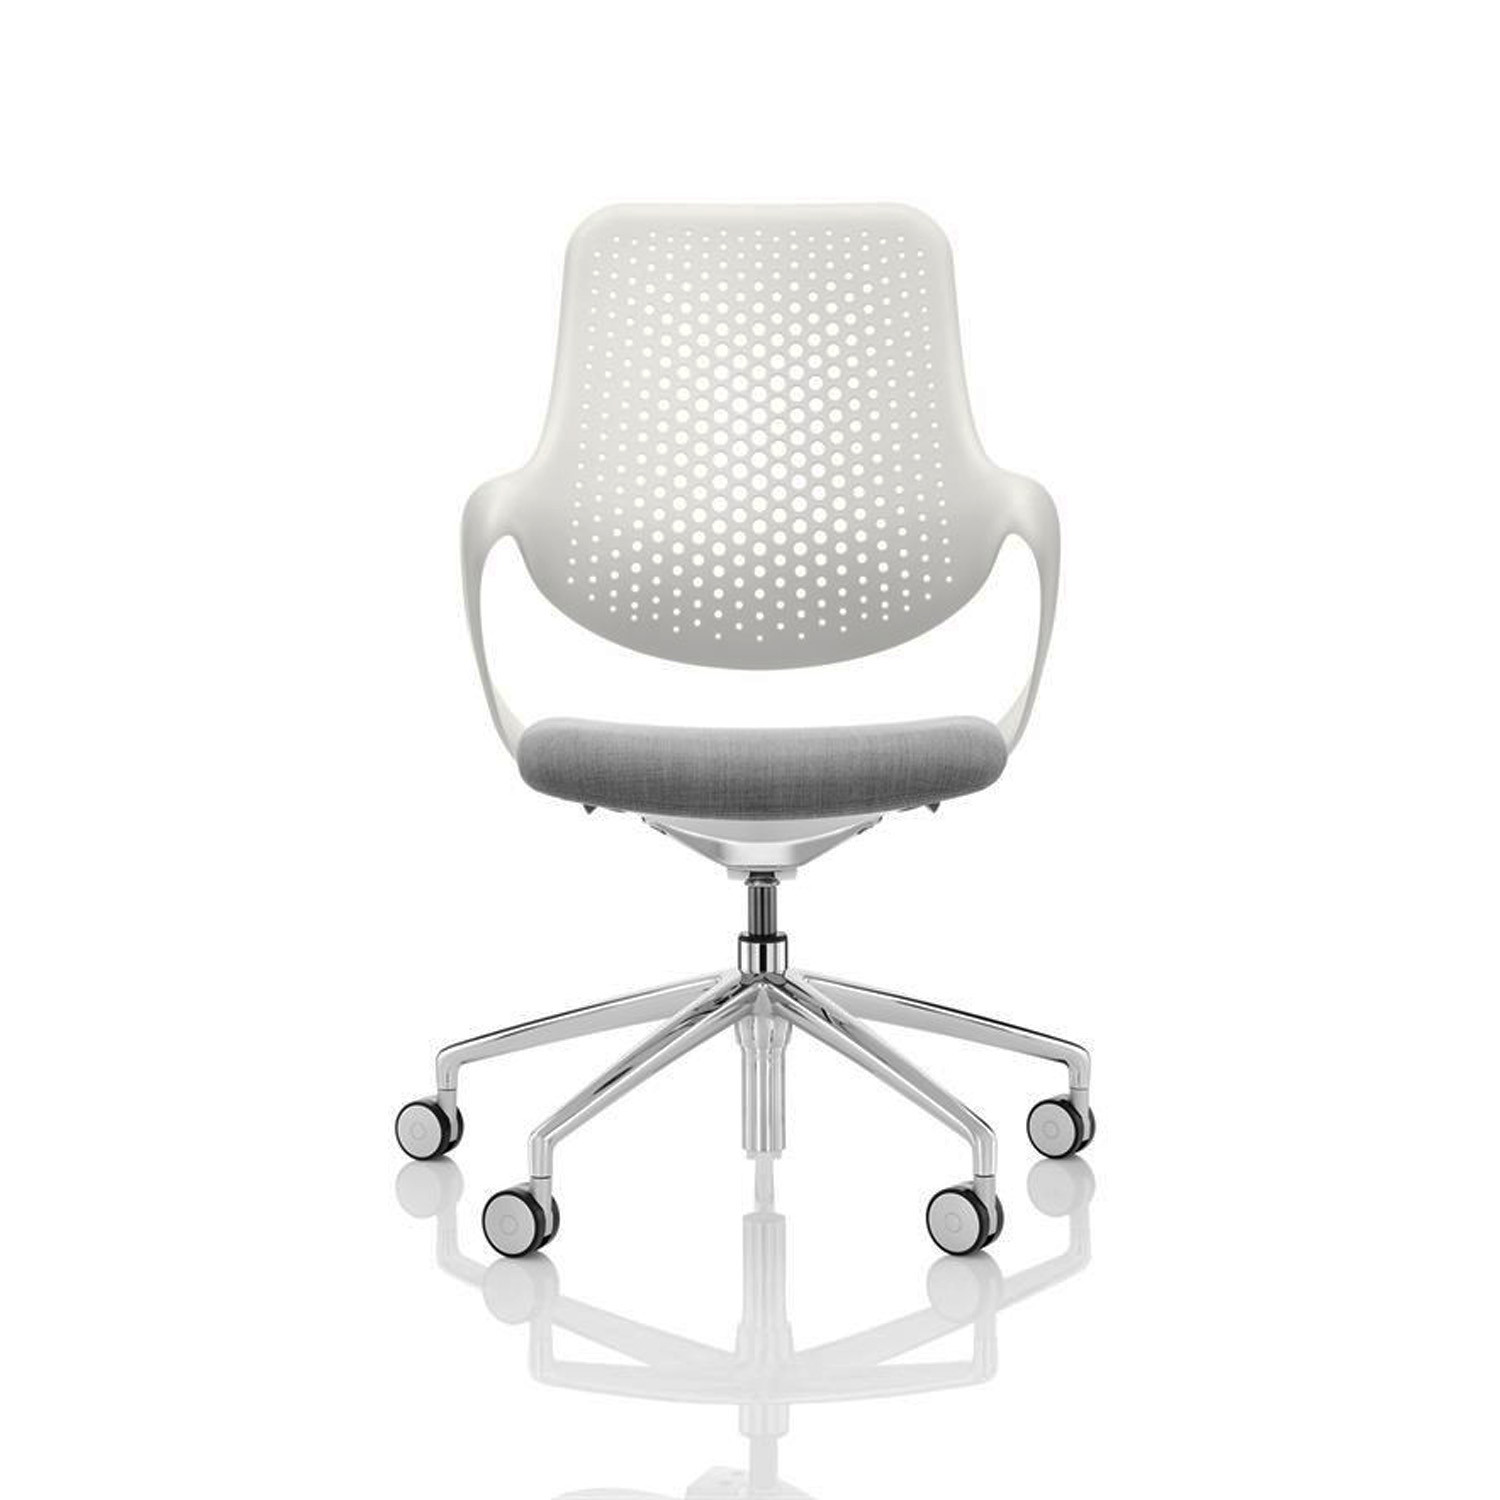 Coza Ergonomic Task Chair by Ballendat